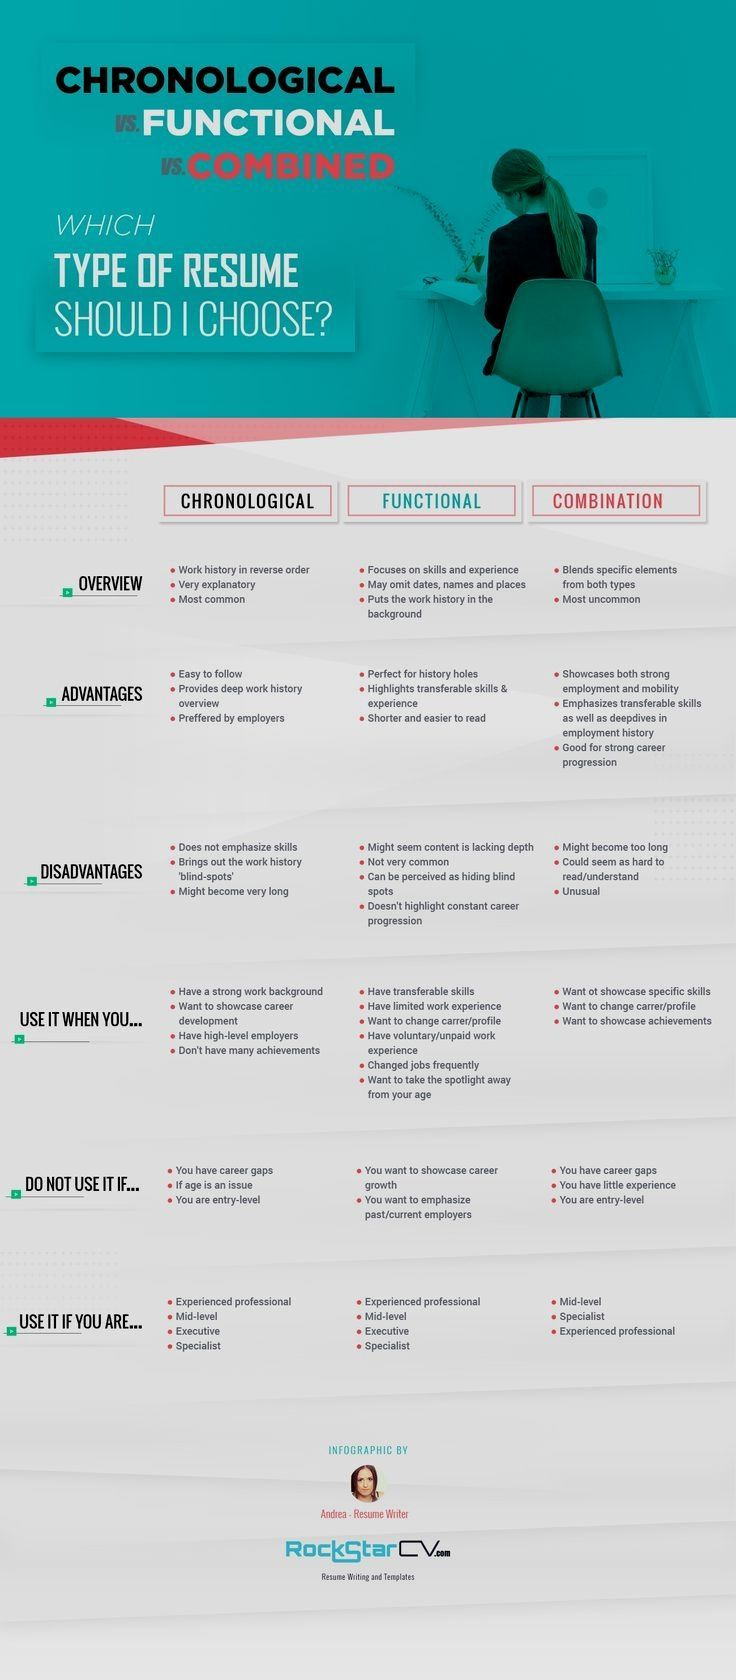 INFOGRAPHIC Chronological vs. Functional vs. Combination